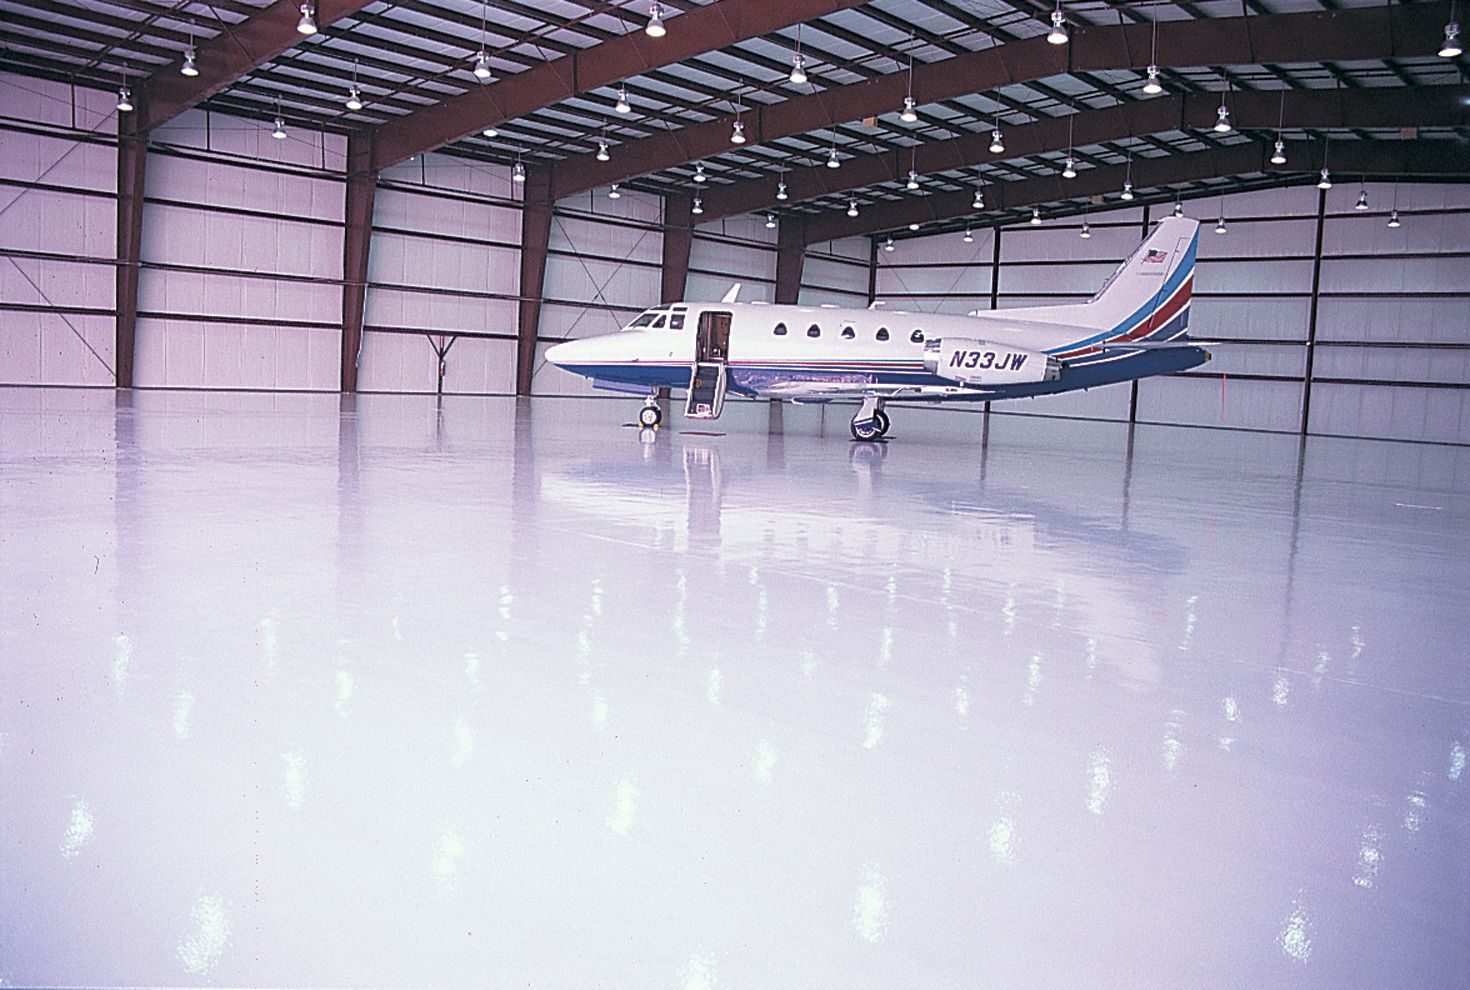 QuestMark's commercial epoxy floor coating applied in aircraft hangar